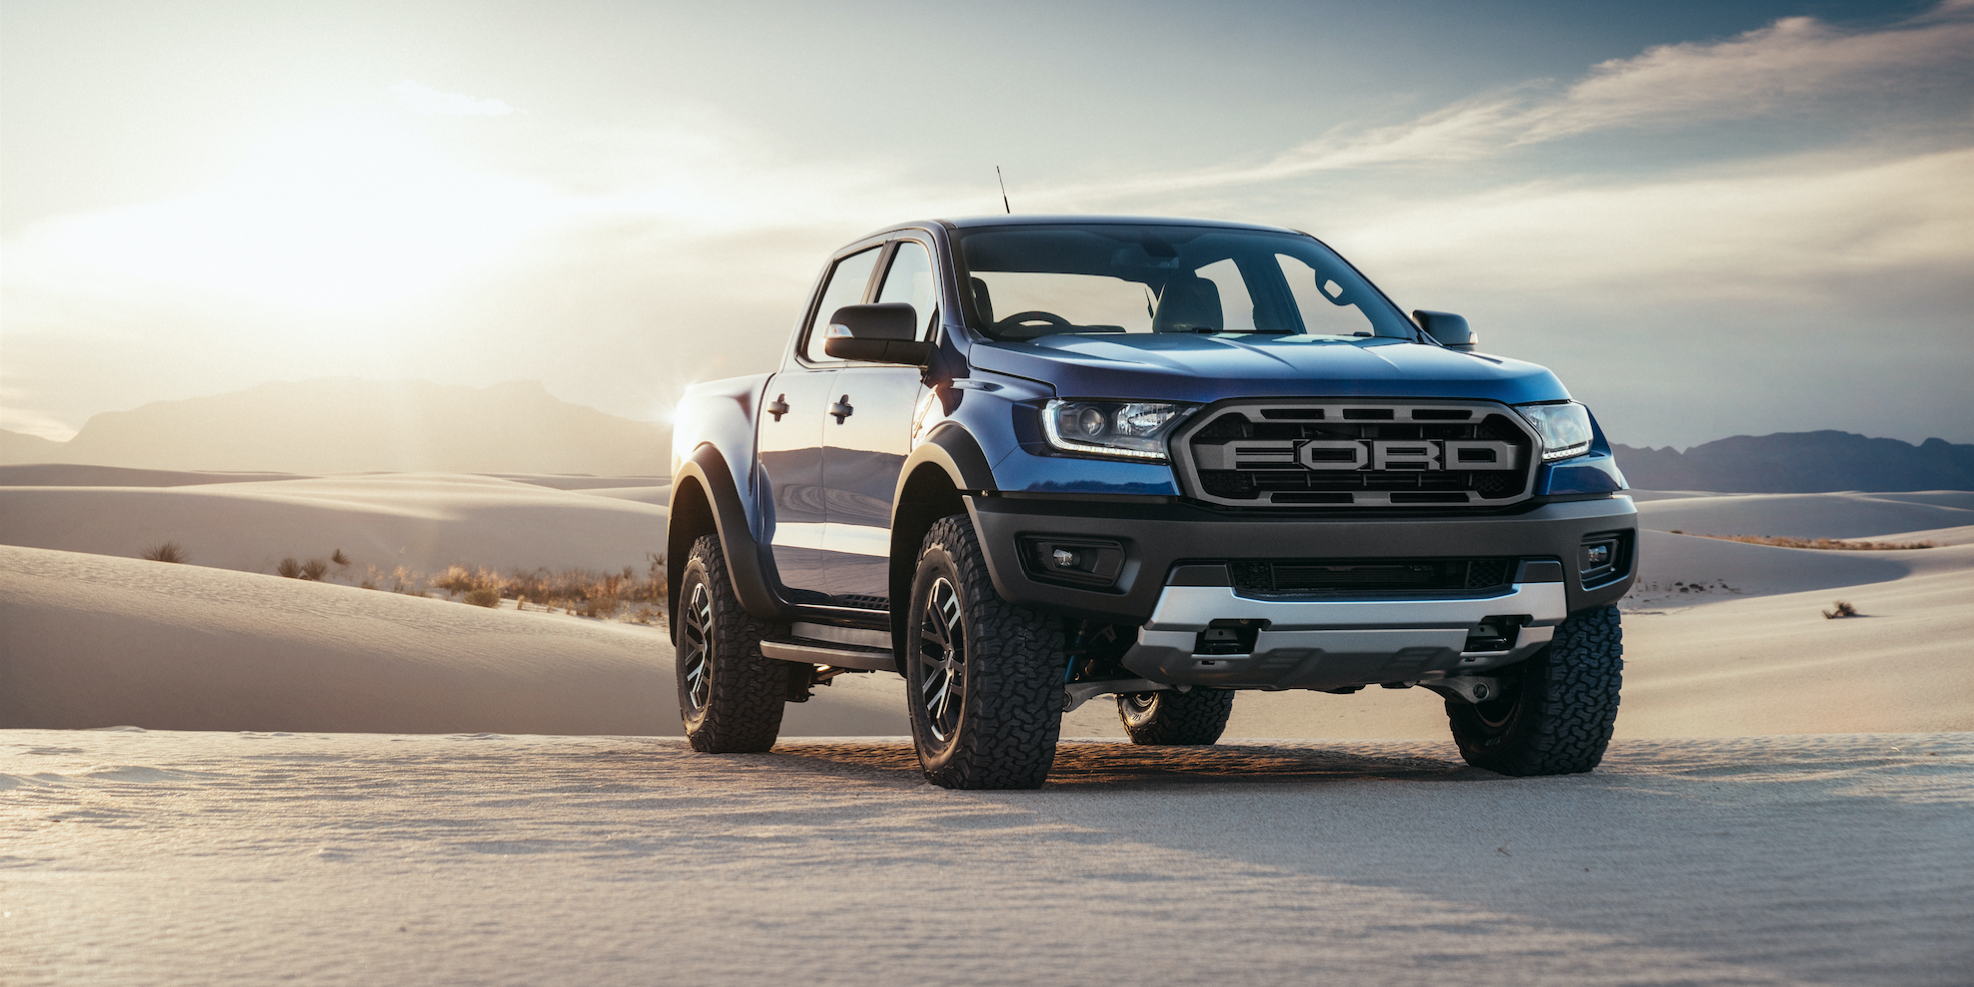 Awesome Cars For Sale >> 2019 Ford Ranger Raptor Info, Pictures, and Pricing - New Ranger Raptor Revealed